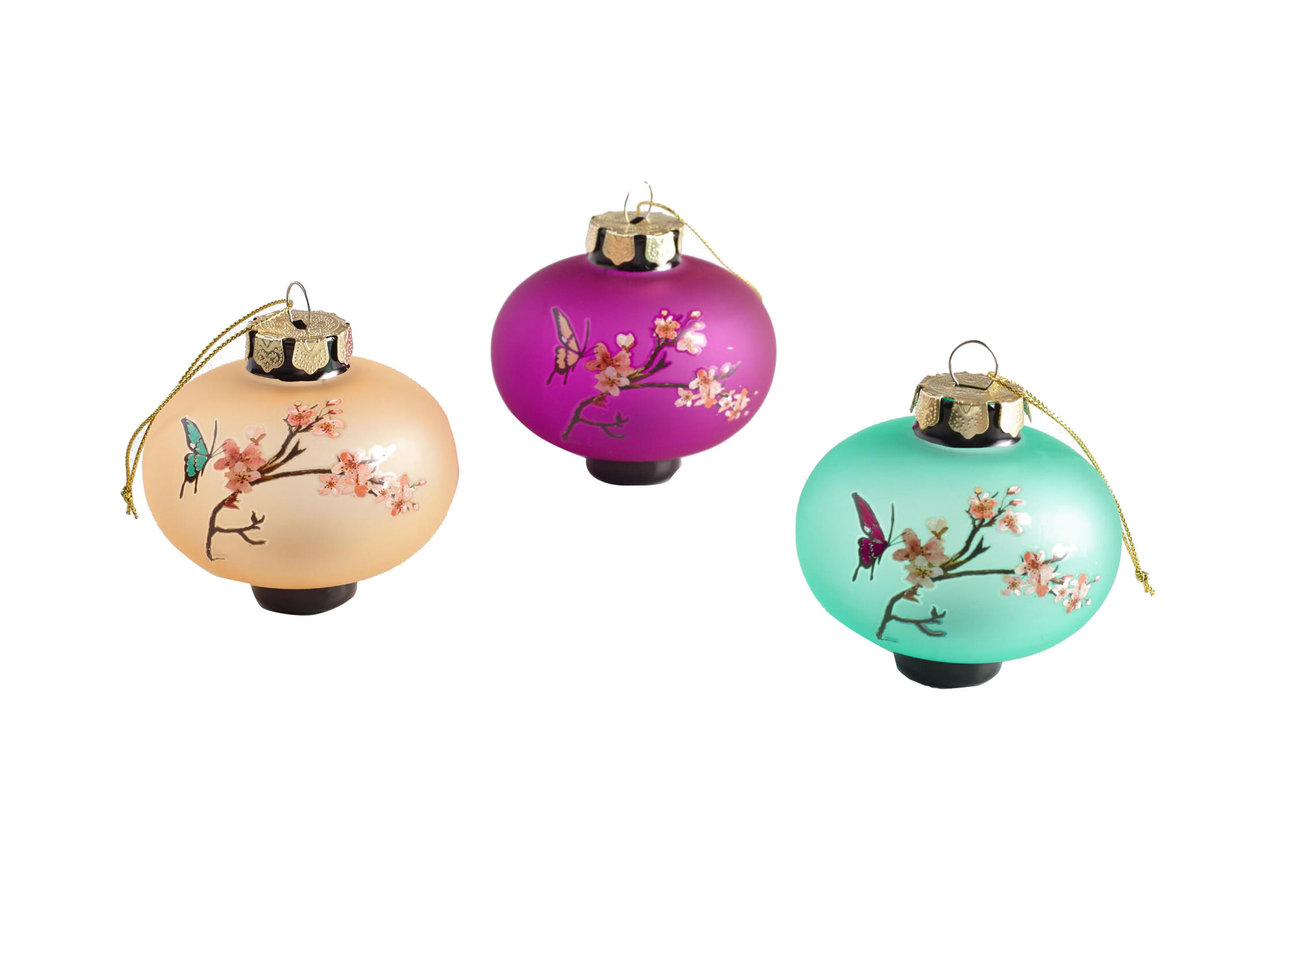 butterfly-globes-ORNAMENTS0716.jpg